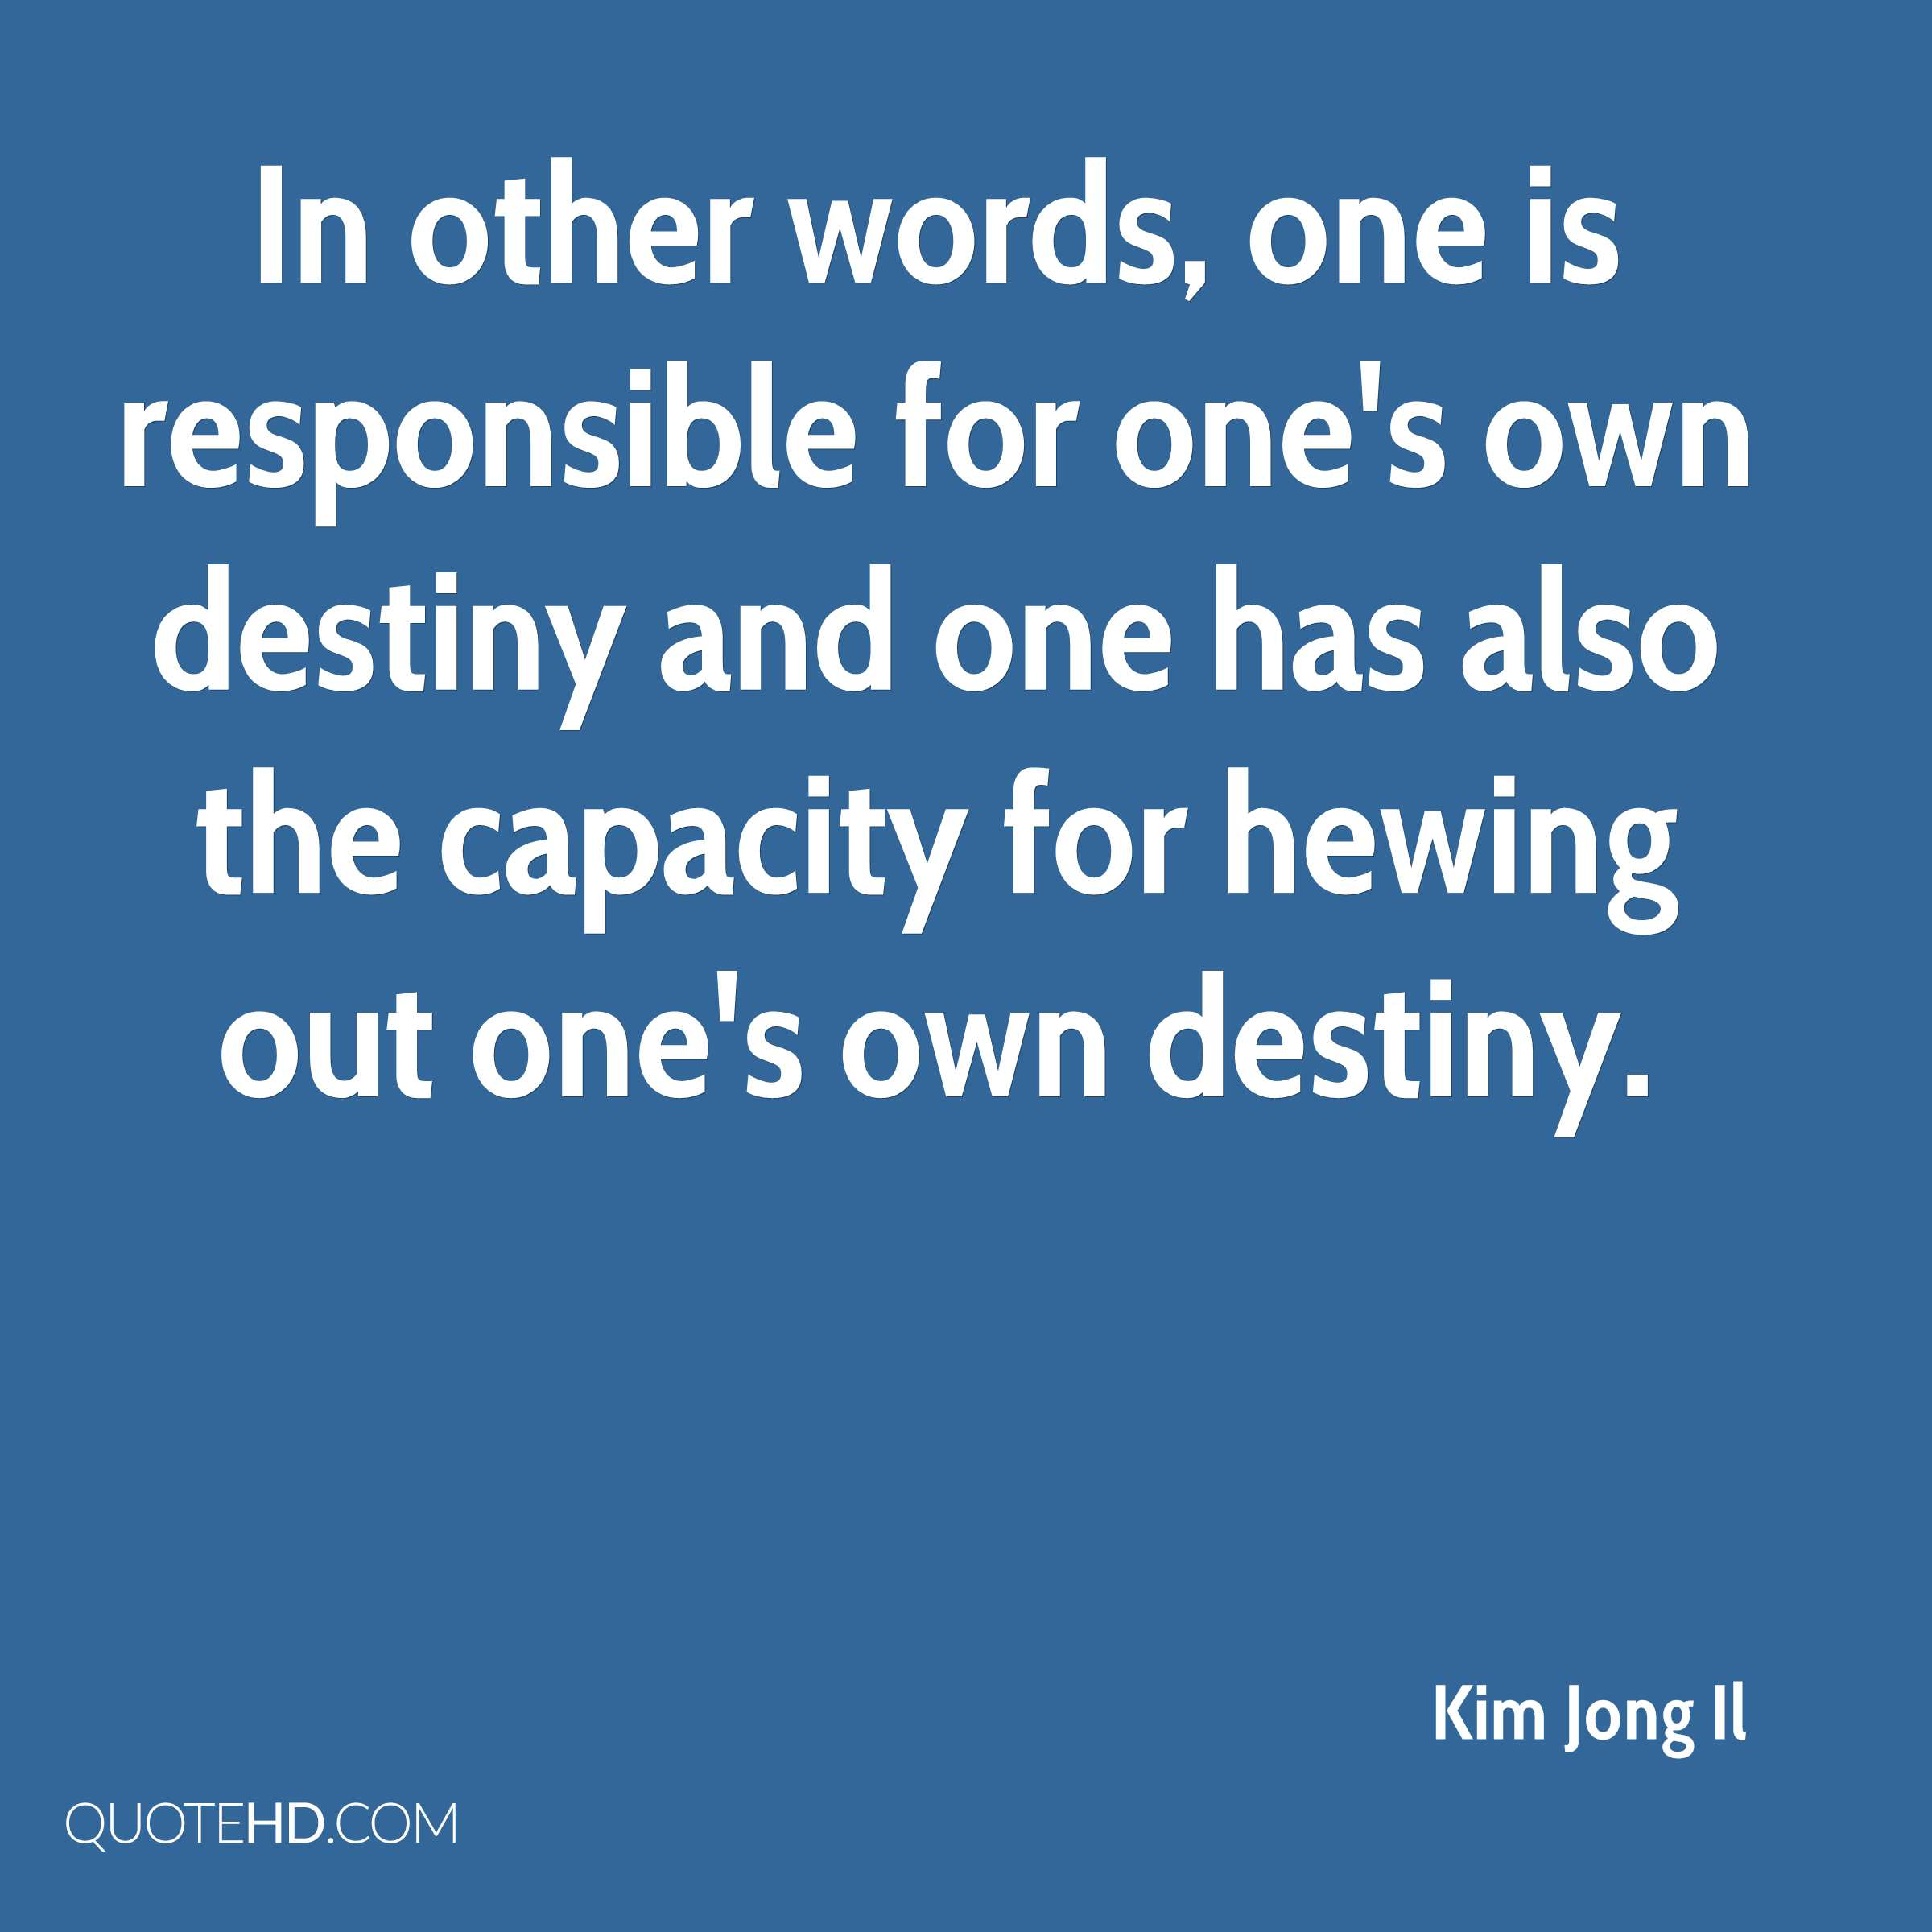 In other words, one is responsible for one's own destiny and one has also the capacity for hewing out one's own destiny.